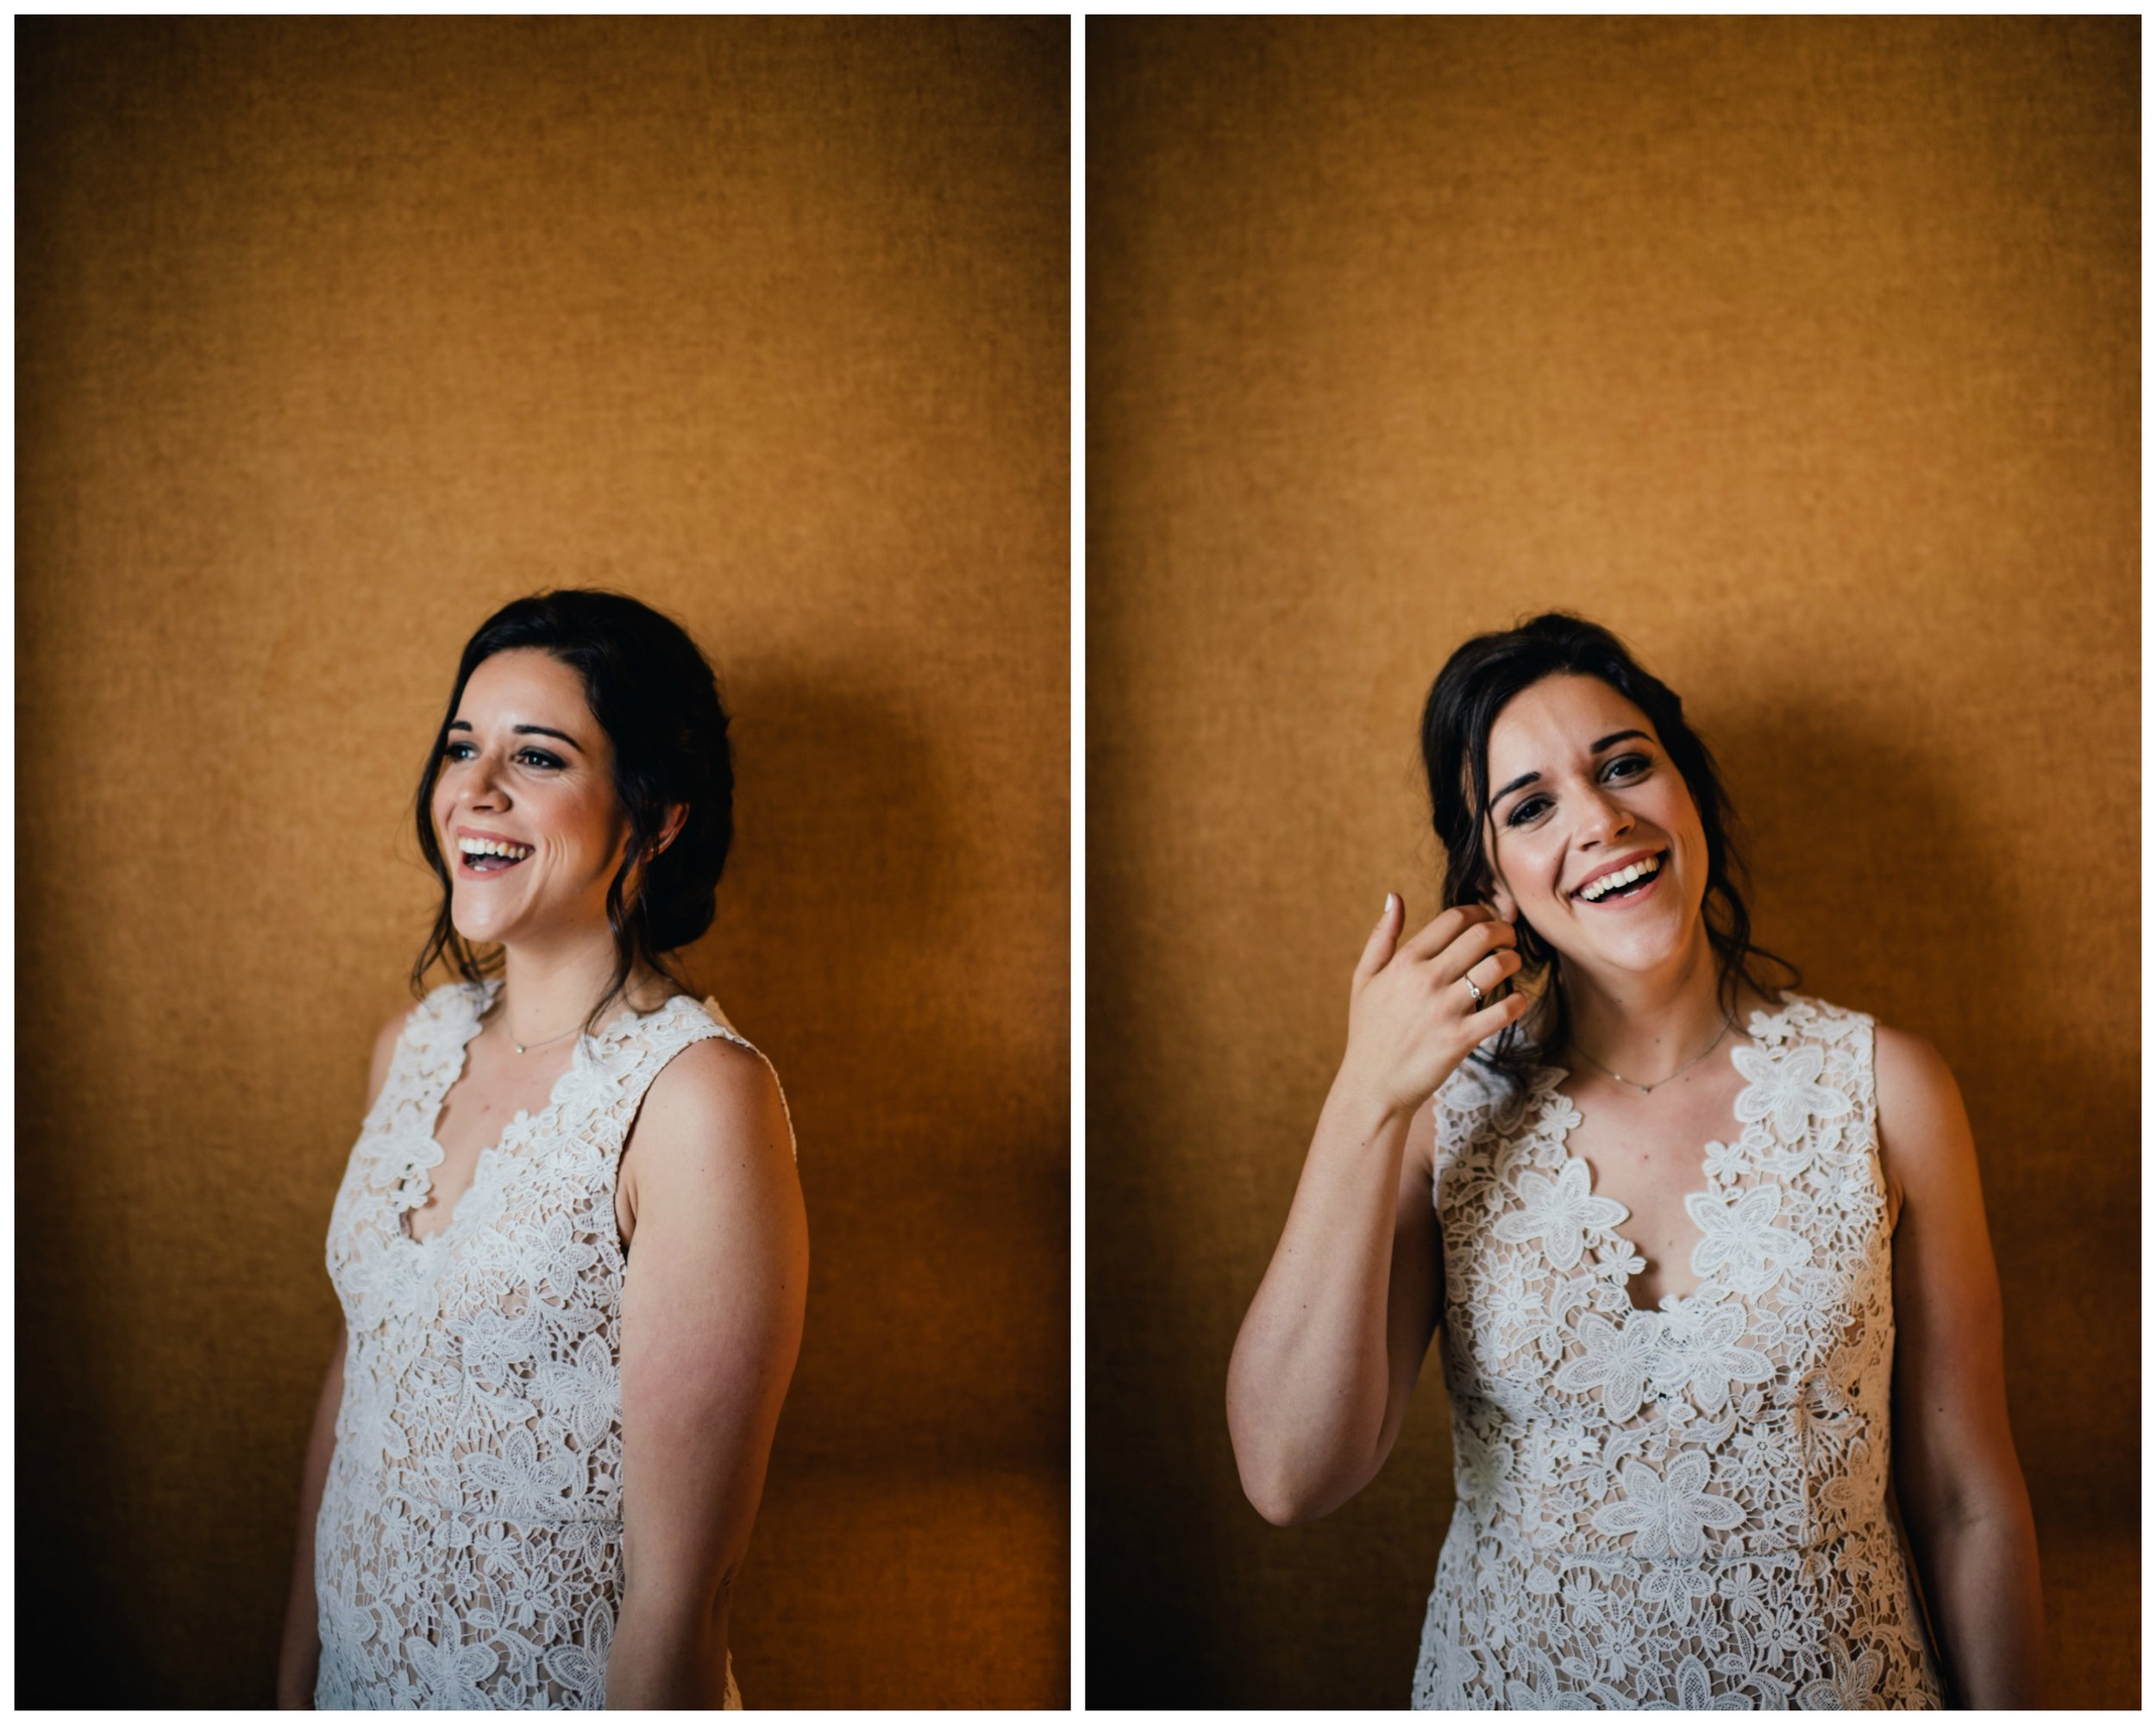 LE FANFARE- NYC INTIMATE WEDDING PHOTOGRAPHER - CHI-CHI ARI 4.jpg